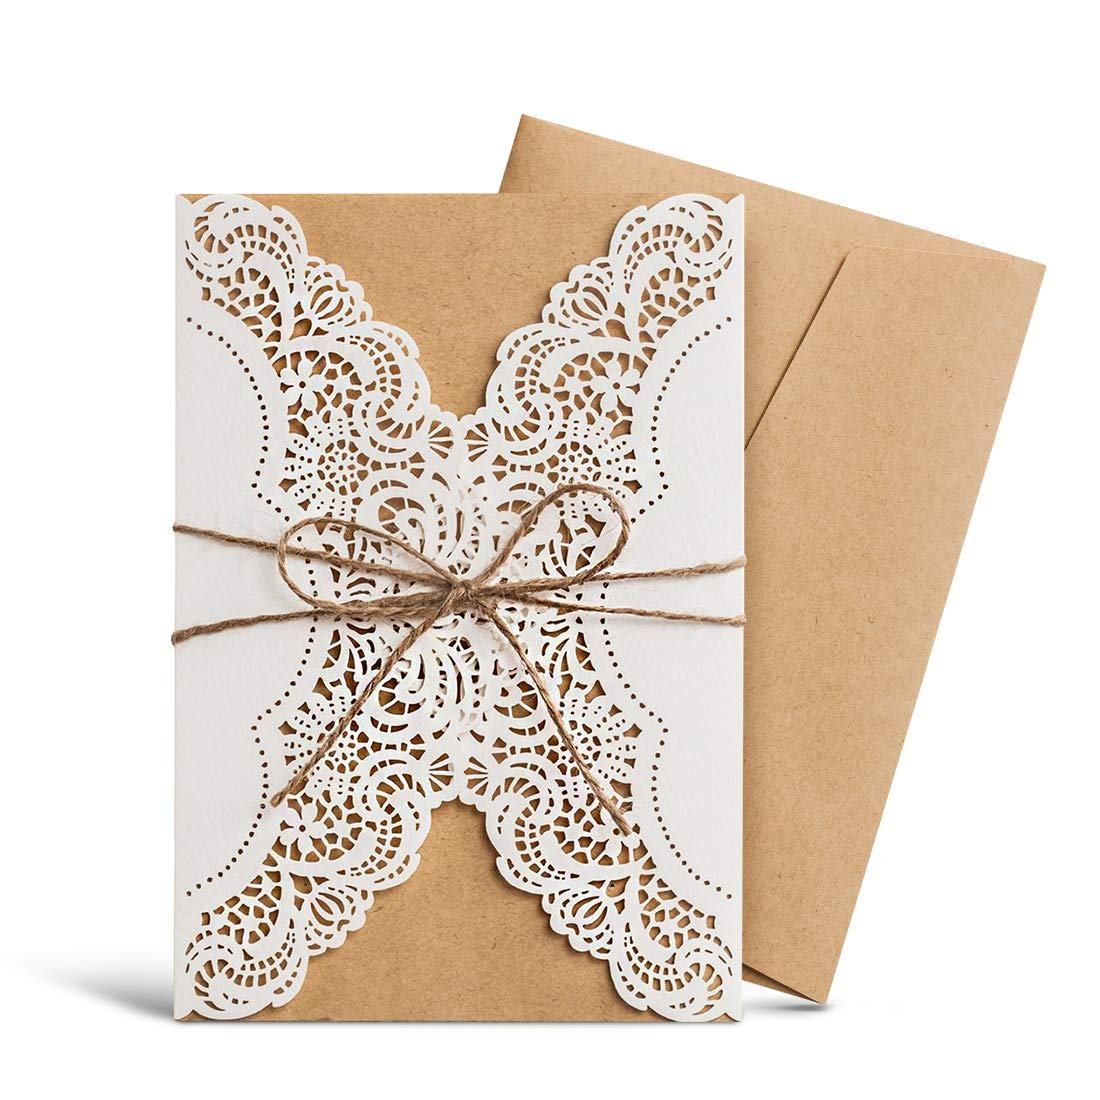 Amazon Wishmade Laser Cut Handmade Wedding Invitations Cards White 50 Pieces Kit For Marriage Engagement Birthday Bridal Shower With Rustic Rope: Homemade Wedding Invitation Design At Reisefeber.org